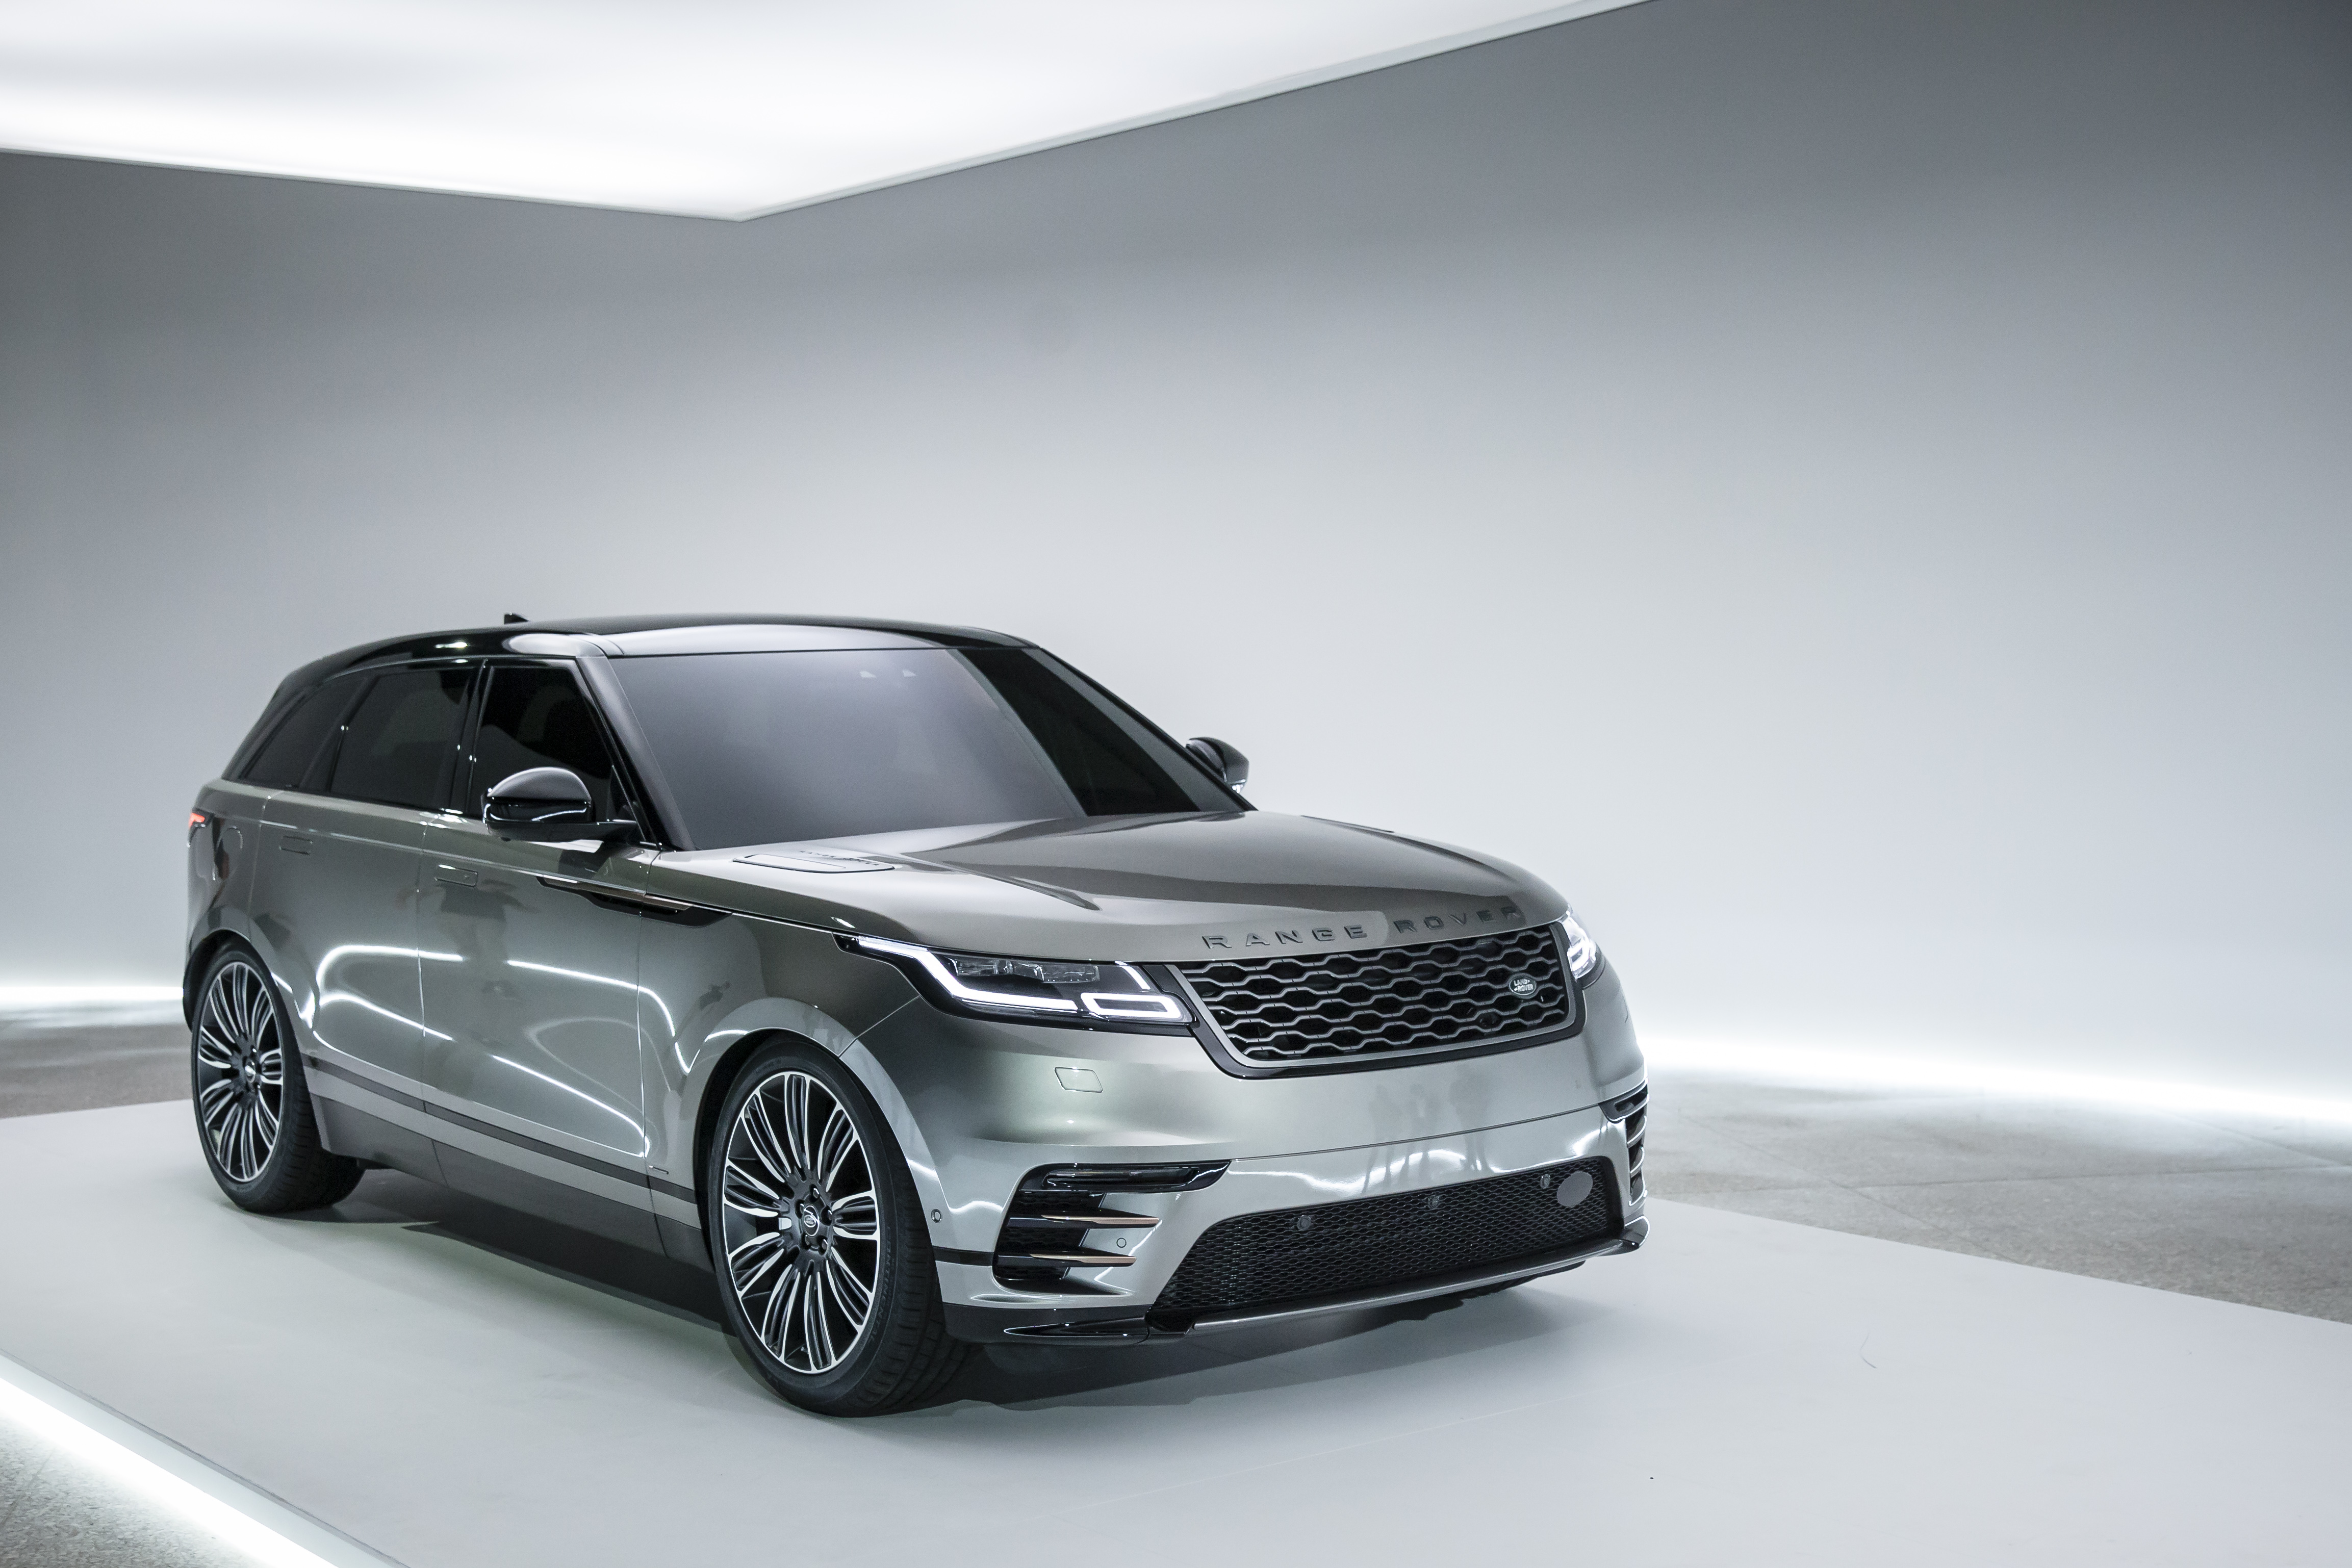 range rover velar designbygemini. Black Bedroom Furniture Sets. Home Design Ideas